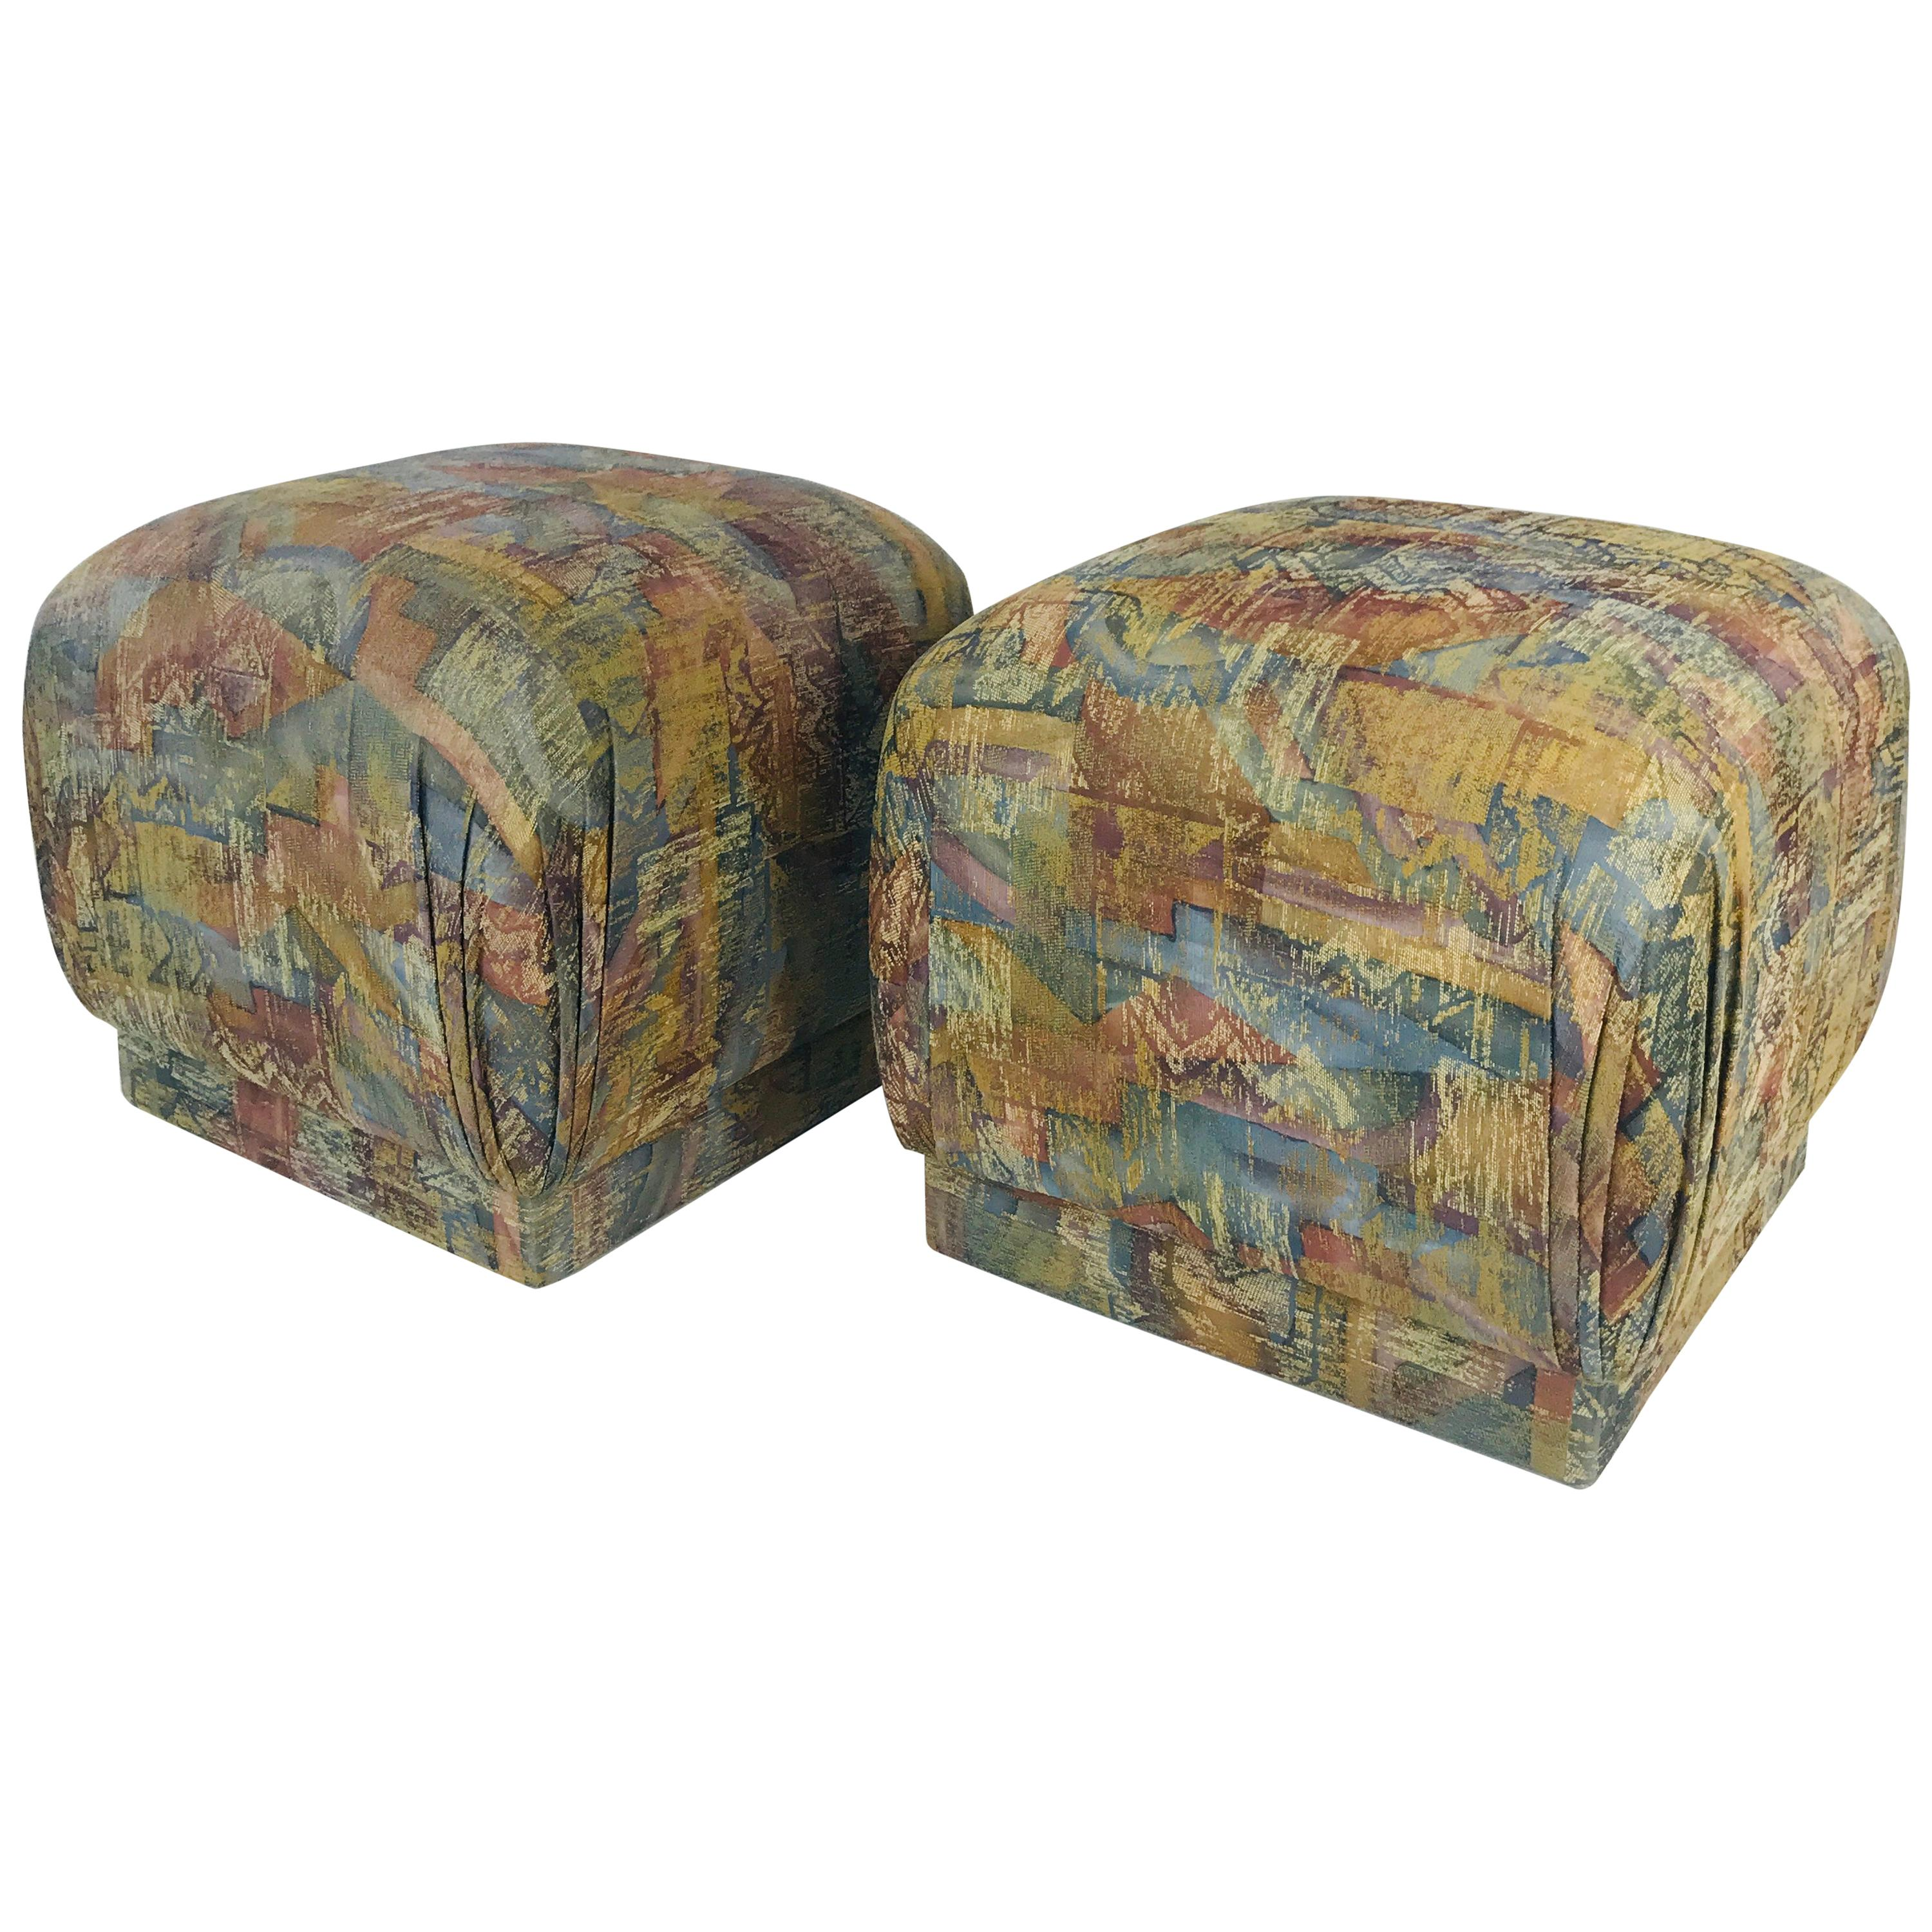 Pair of Pouf Ottomans with Plinth Base